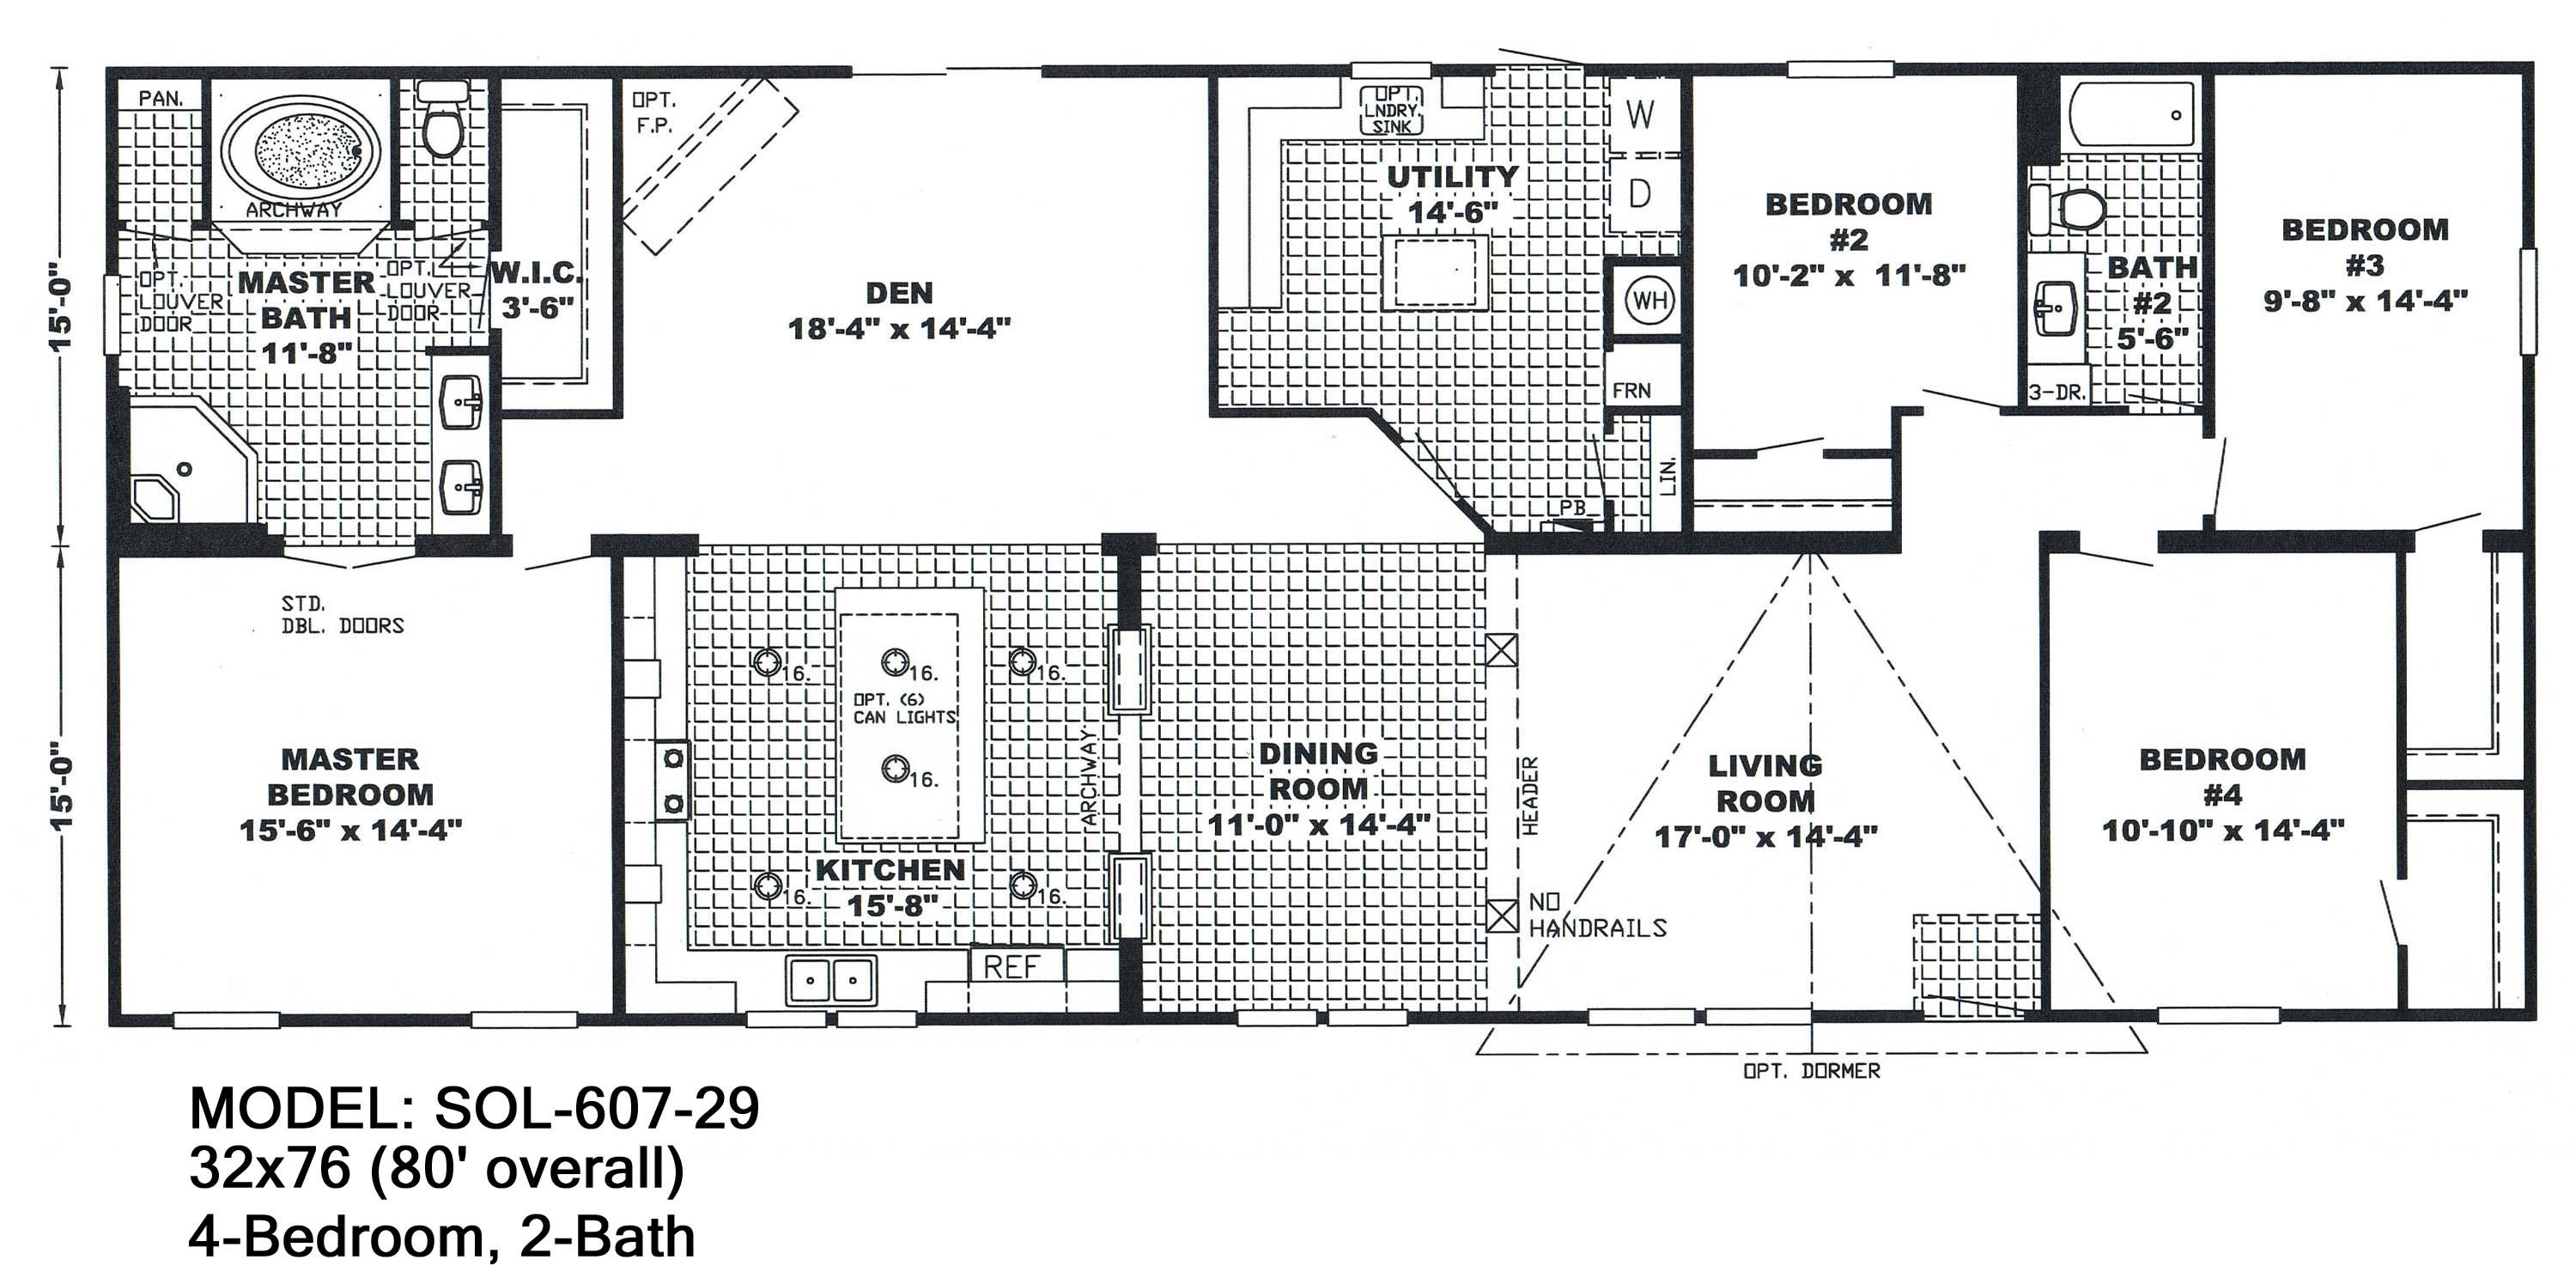 Double wide floor plans bed bath mobile home house also sweet rh ar pinterest